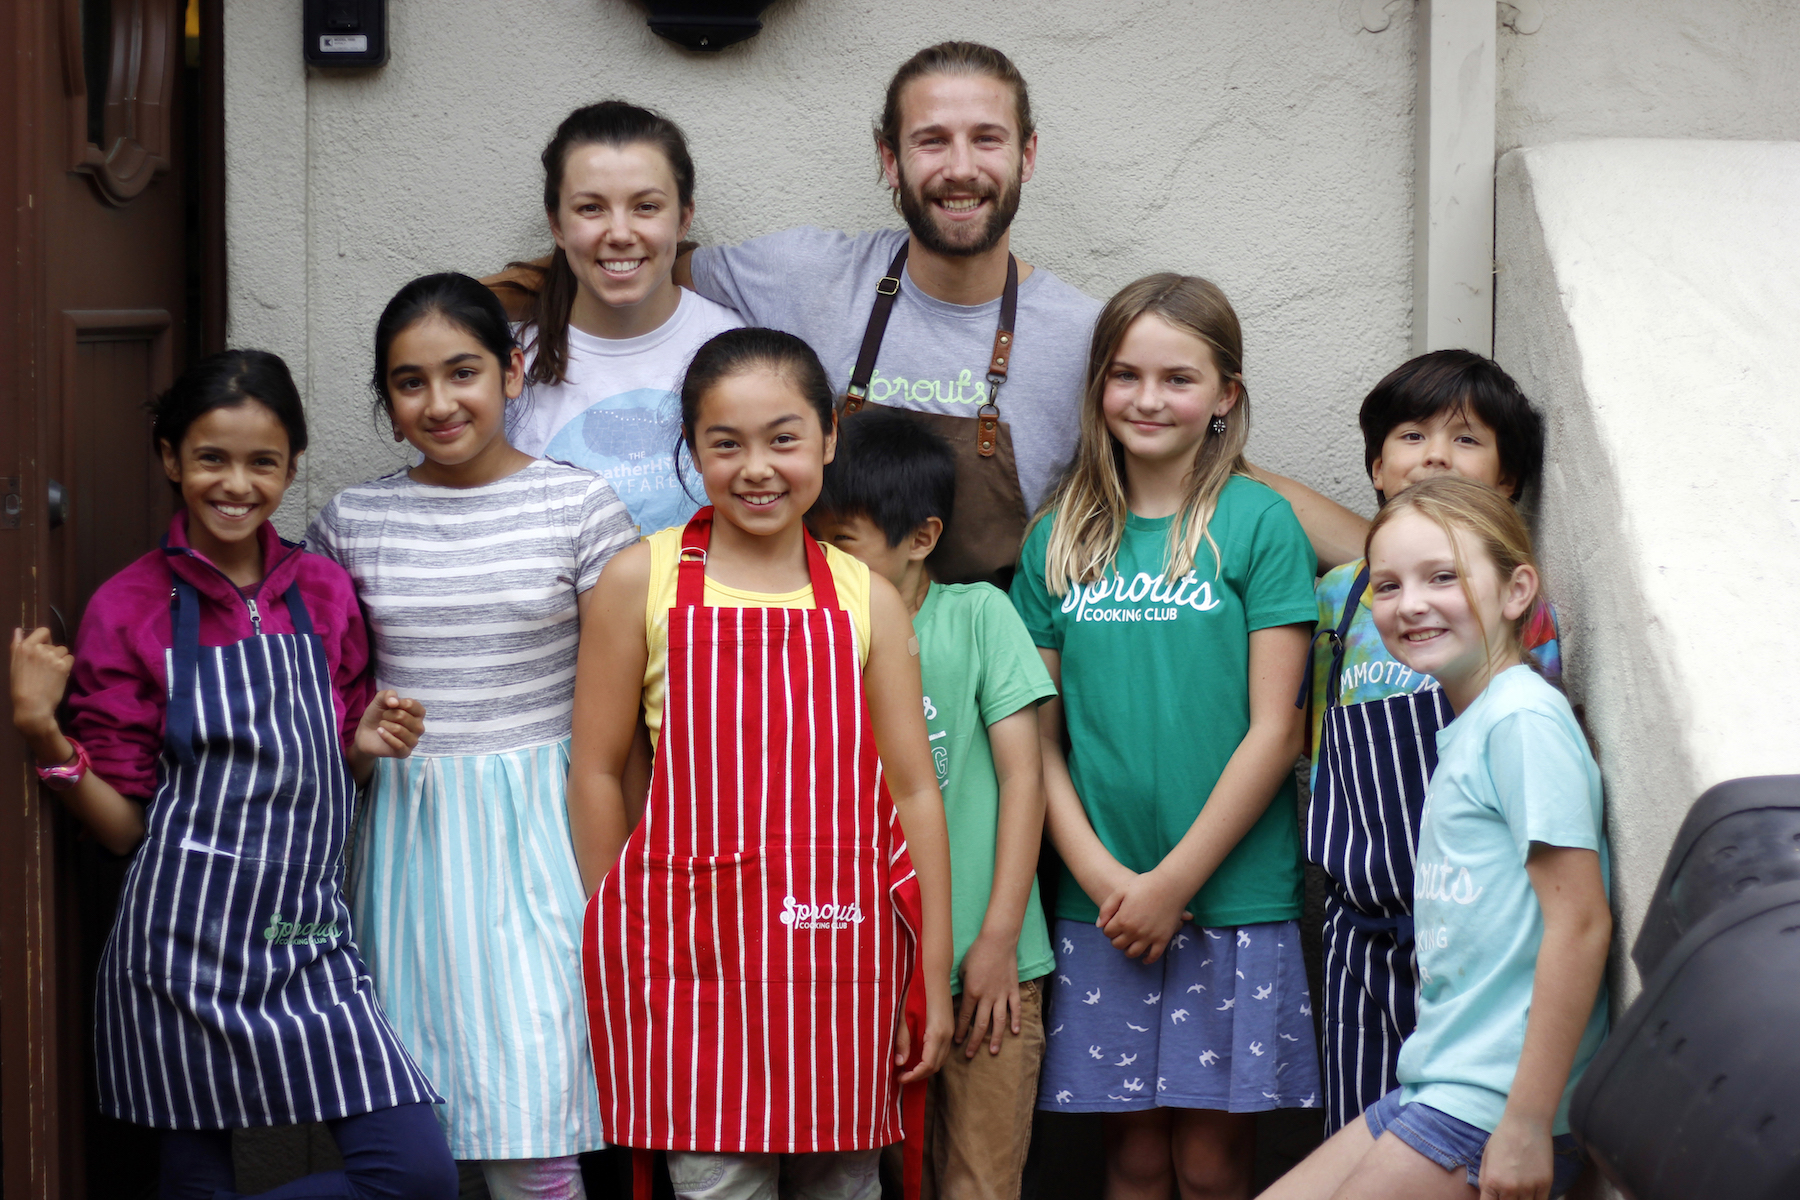 Students at Sprouts Cooking Club learn basic cooking techniques from a team of chefs with diverse backgrounds and philosophies.